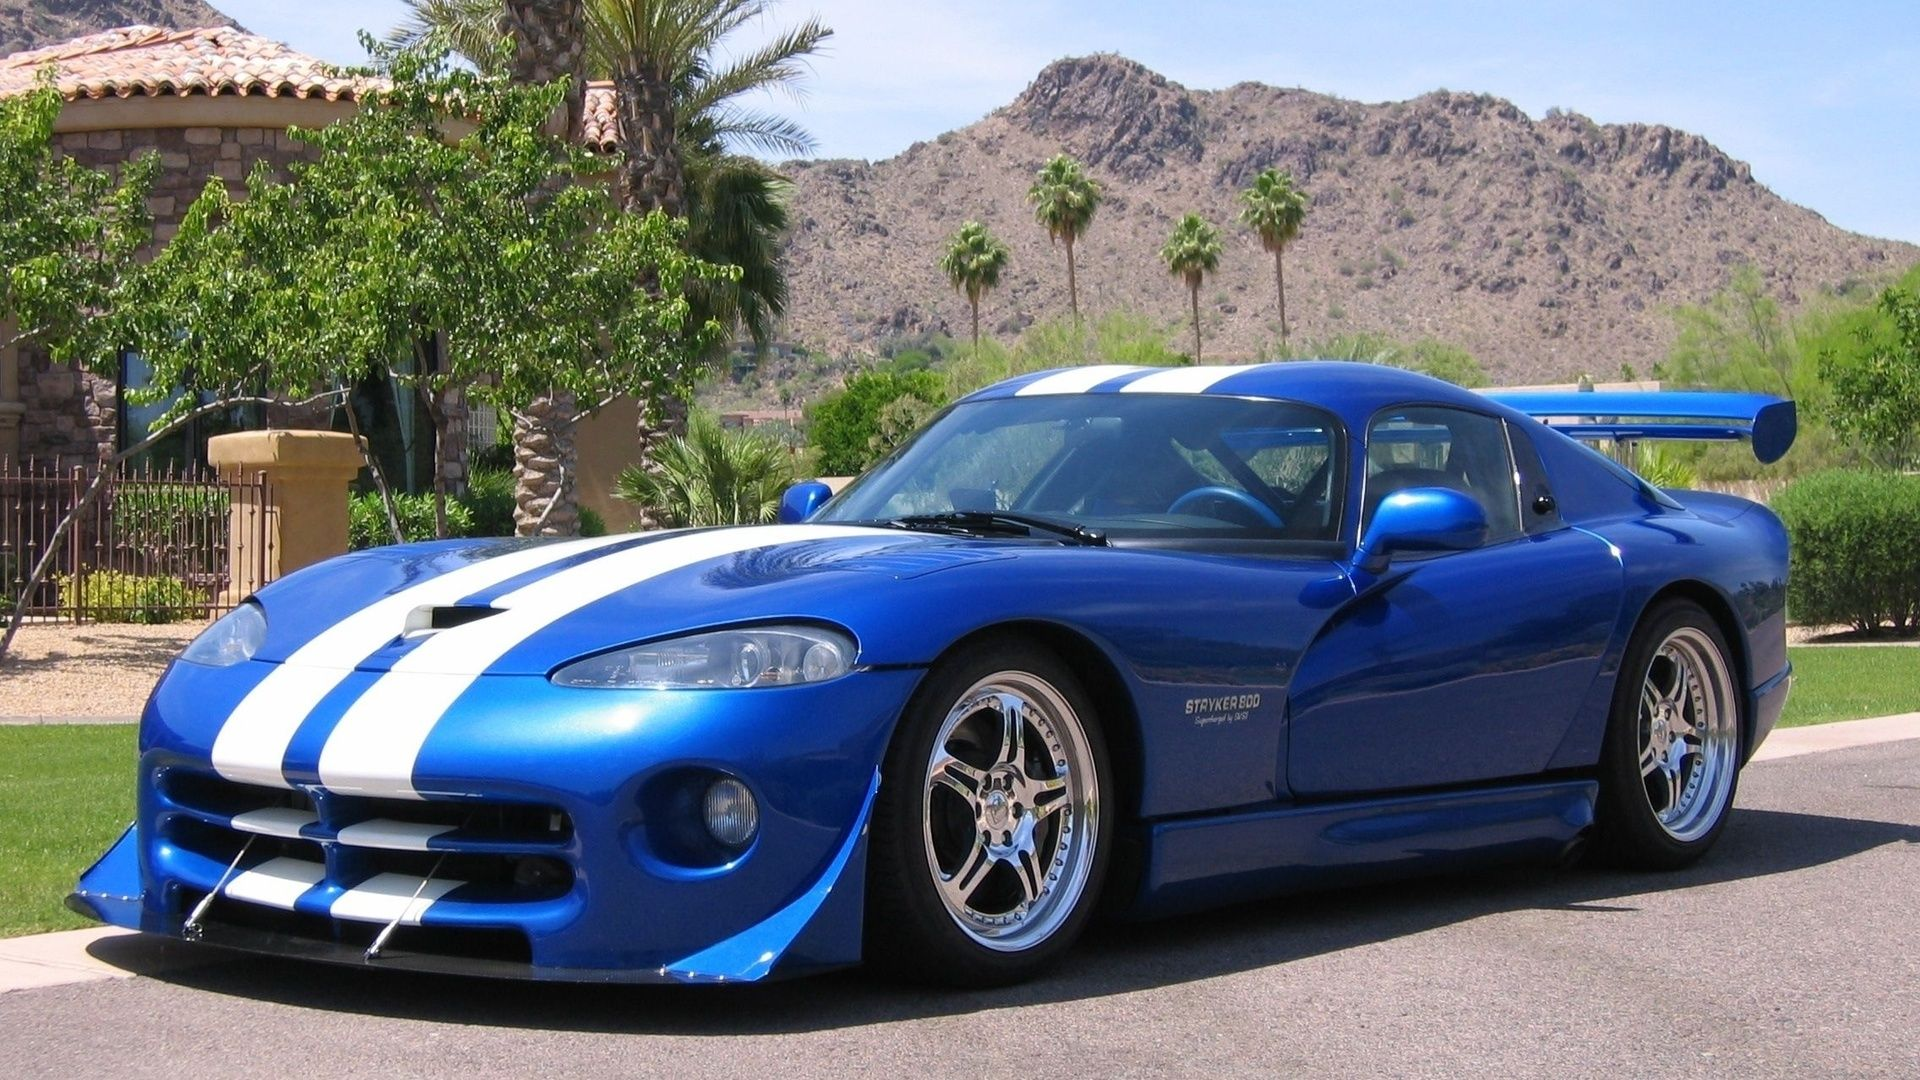 VIPER BABES | Wallpaper Dodge Viper Gts, Tuning, Car, Cars, Dodge,